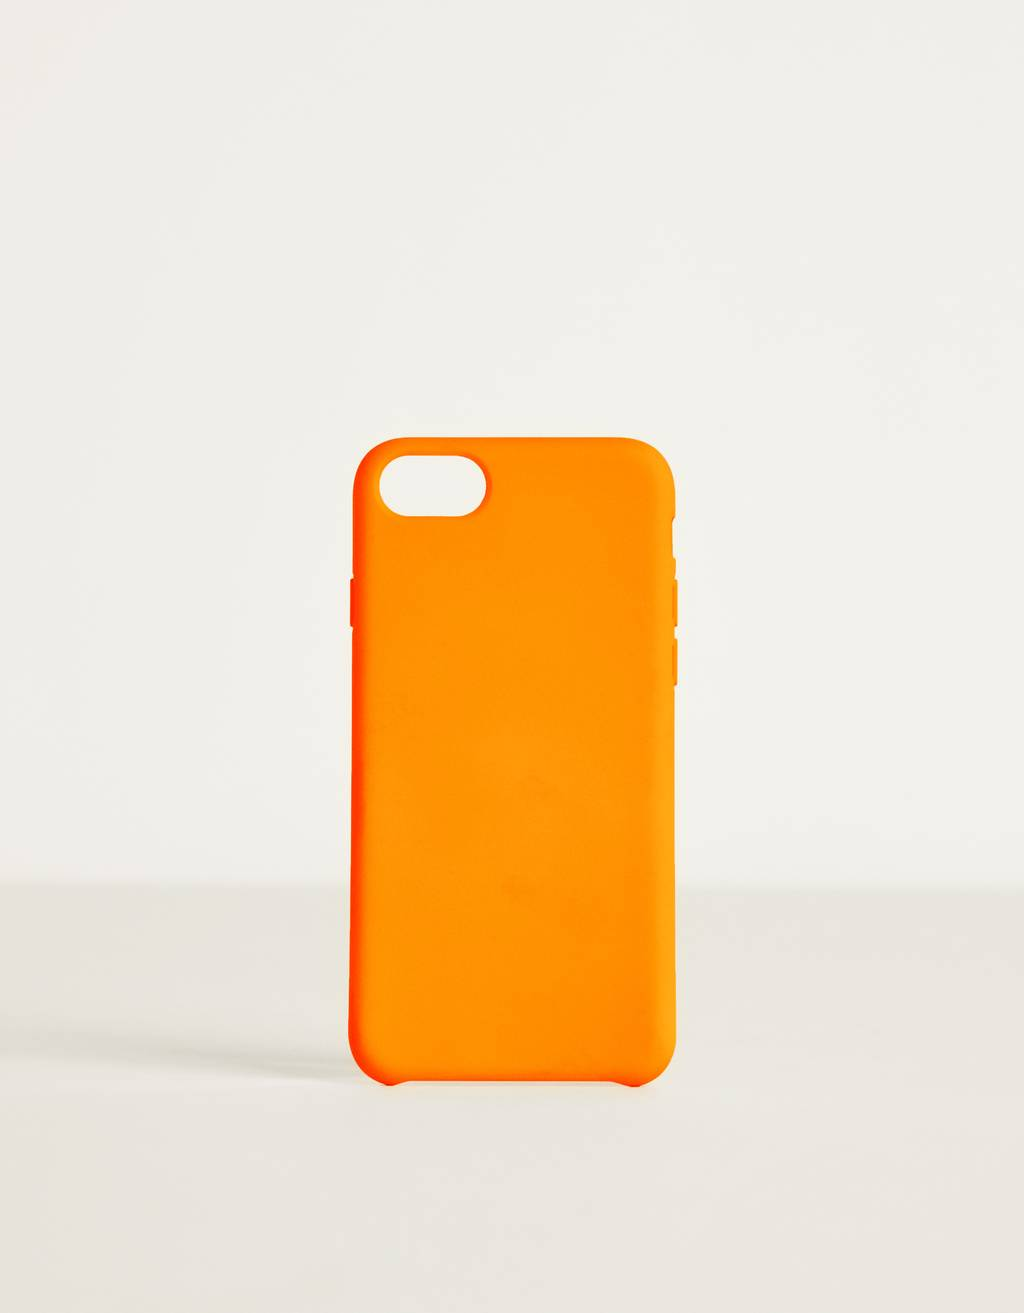 Coque unie iPhone 6 / 7 / 8